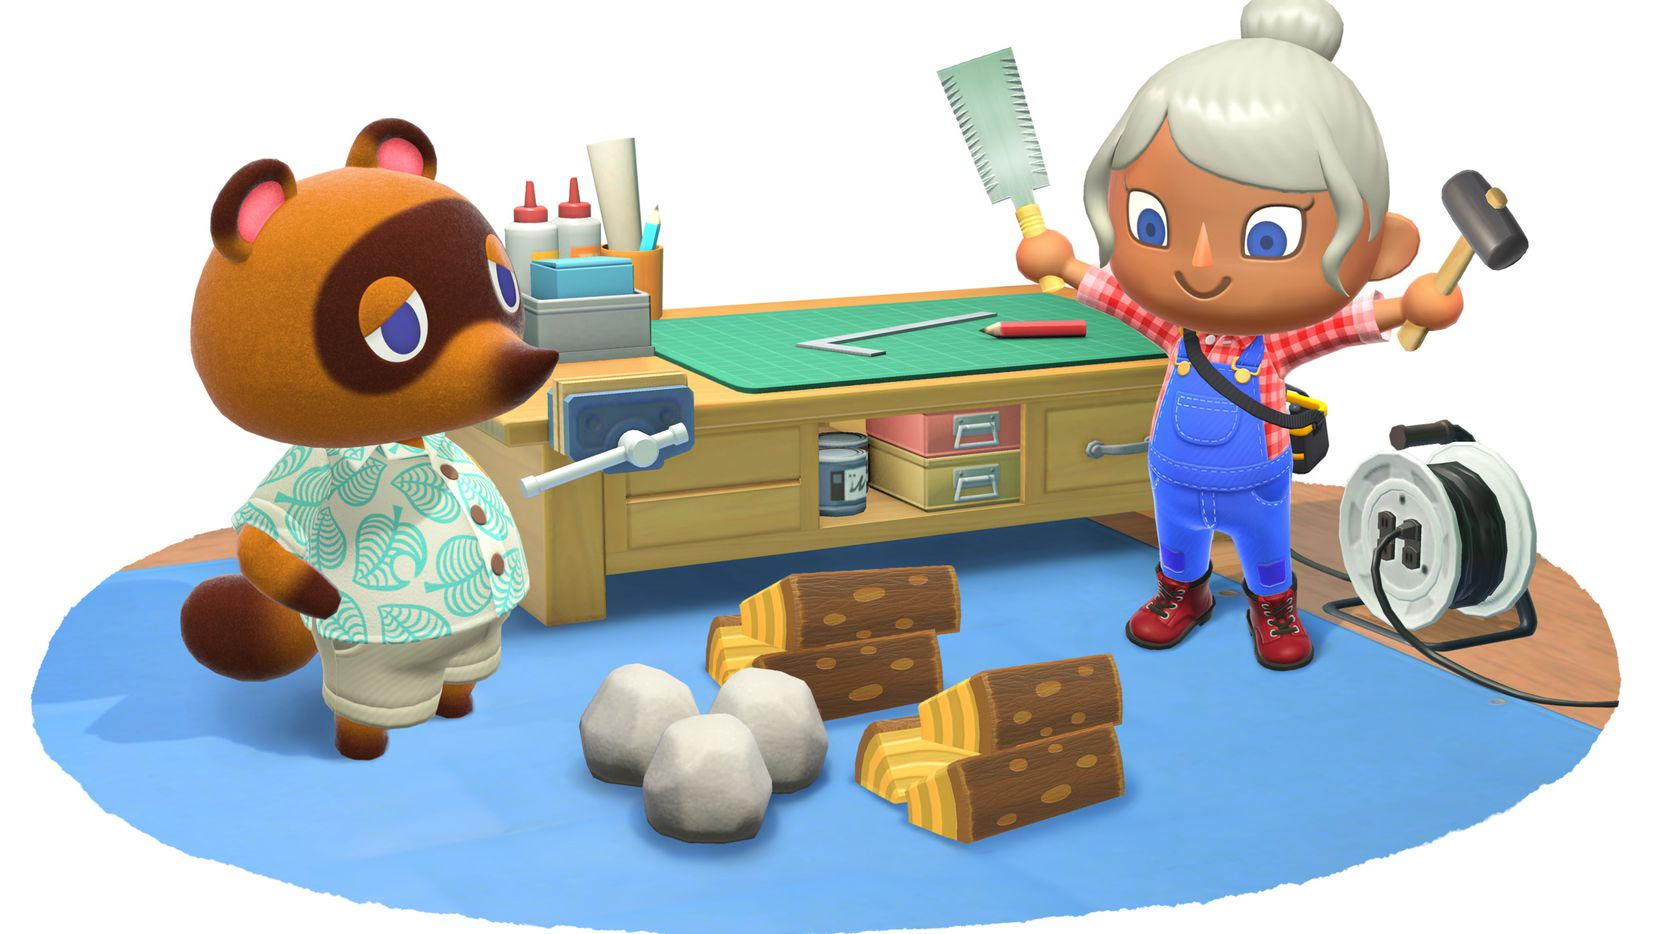 Artwork from 'Animal Crossing: New Horizons' on the Nintendo Switch.